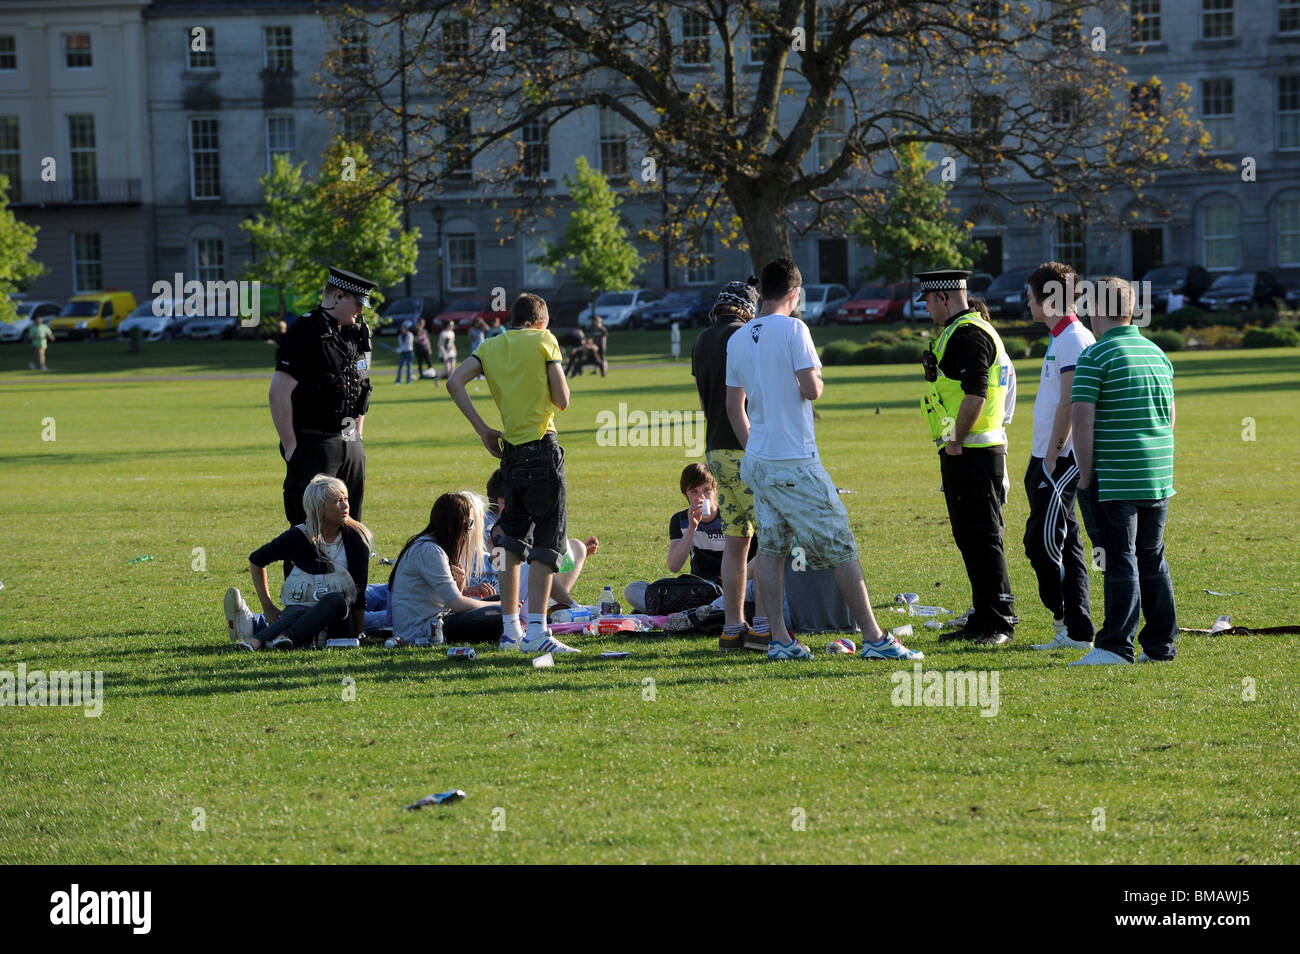 Police caution youths drinking in the park - Stock Image